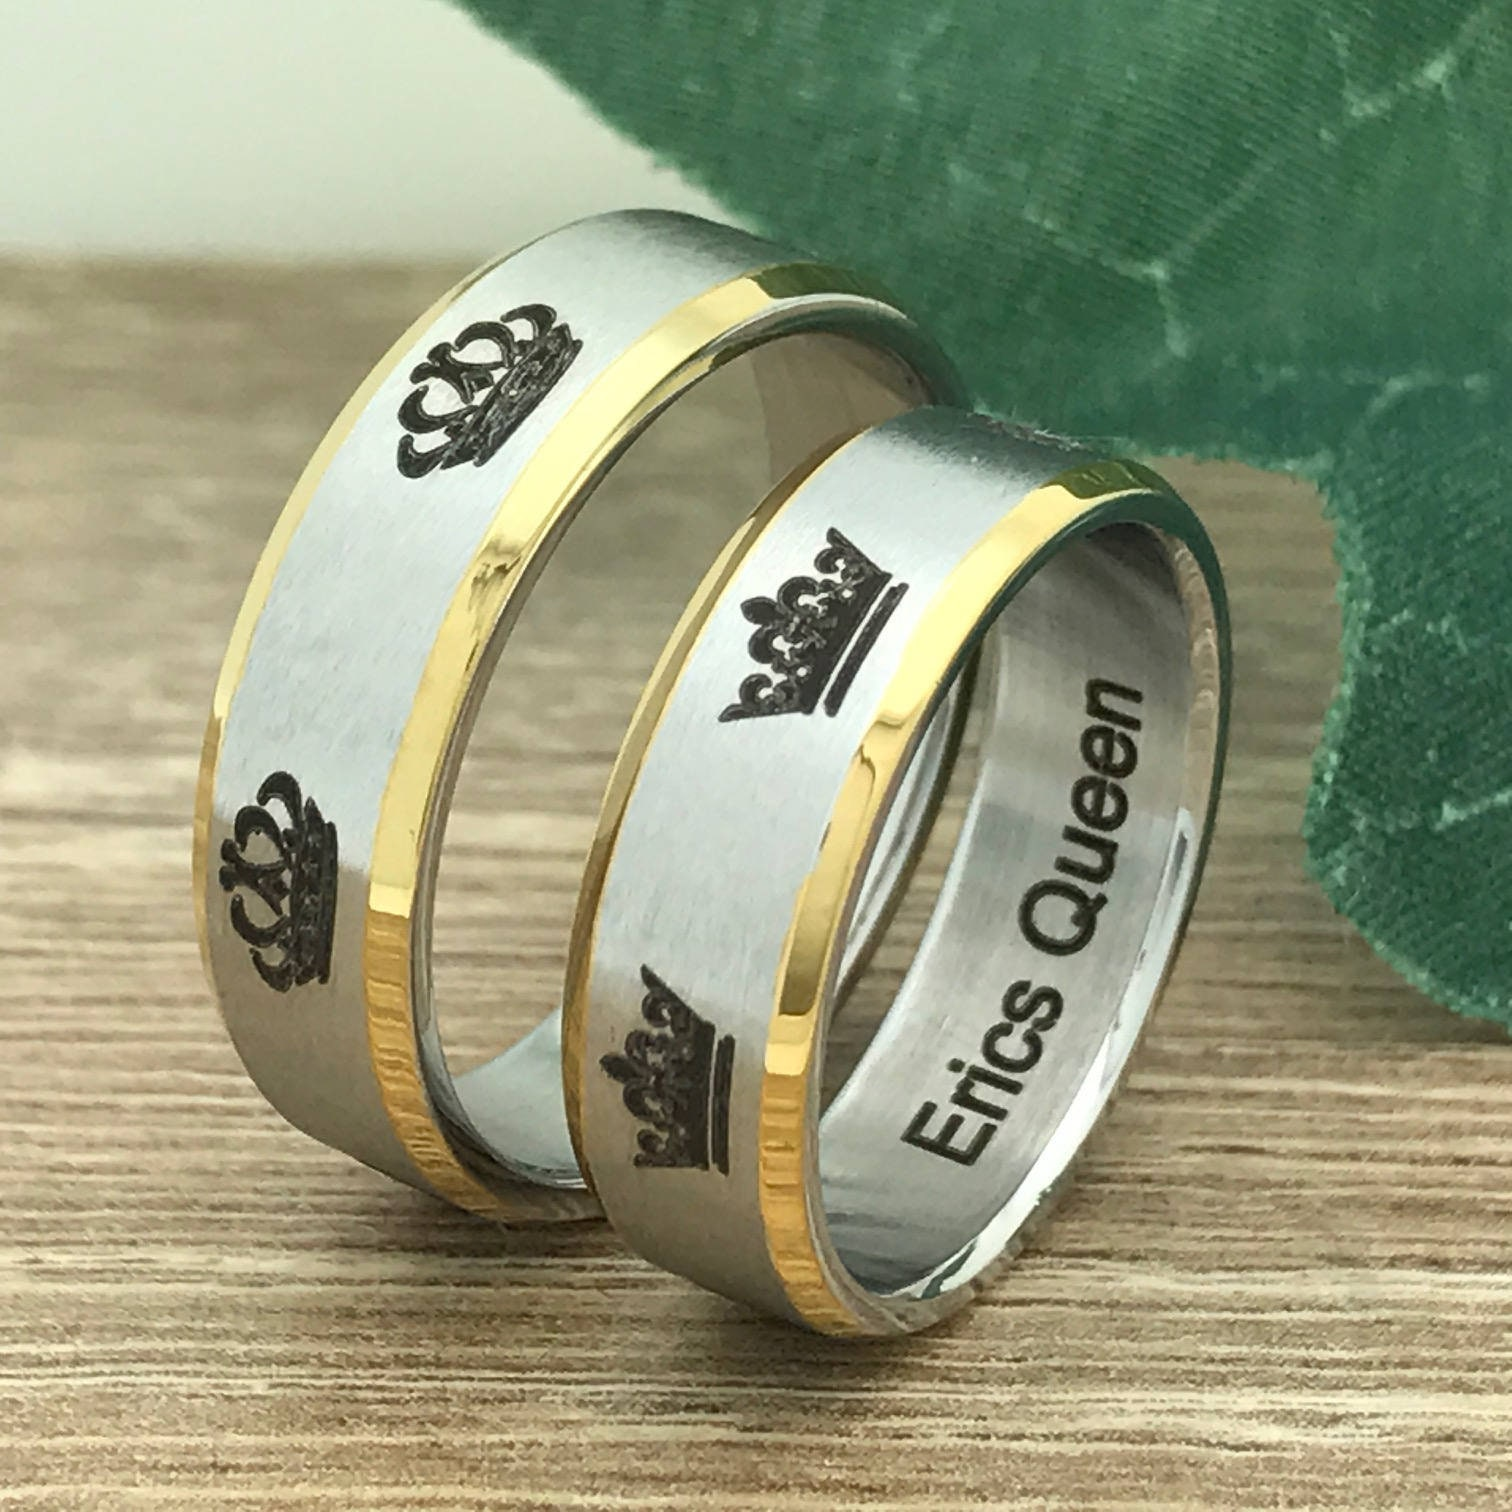 7f77d0316b111 6mm King and Queen Rings, Personalize Engrave Stainless Steel Rings with  King & Queen Crown Design,Promise Rings, Couples Ring SSR584